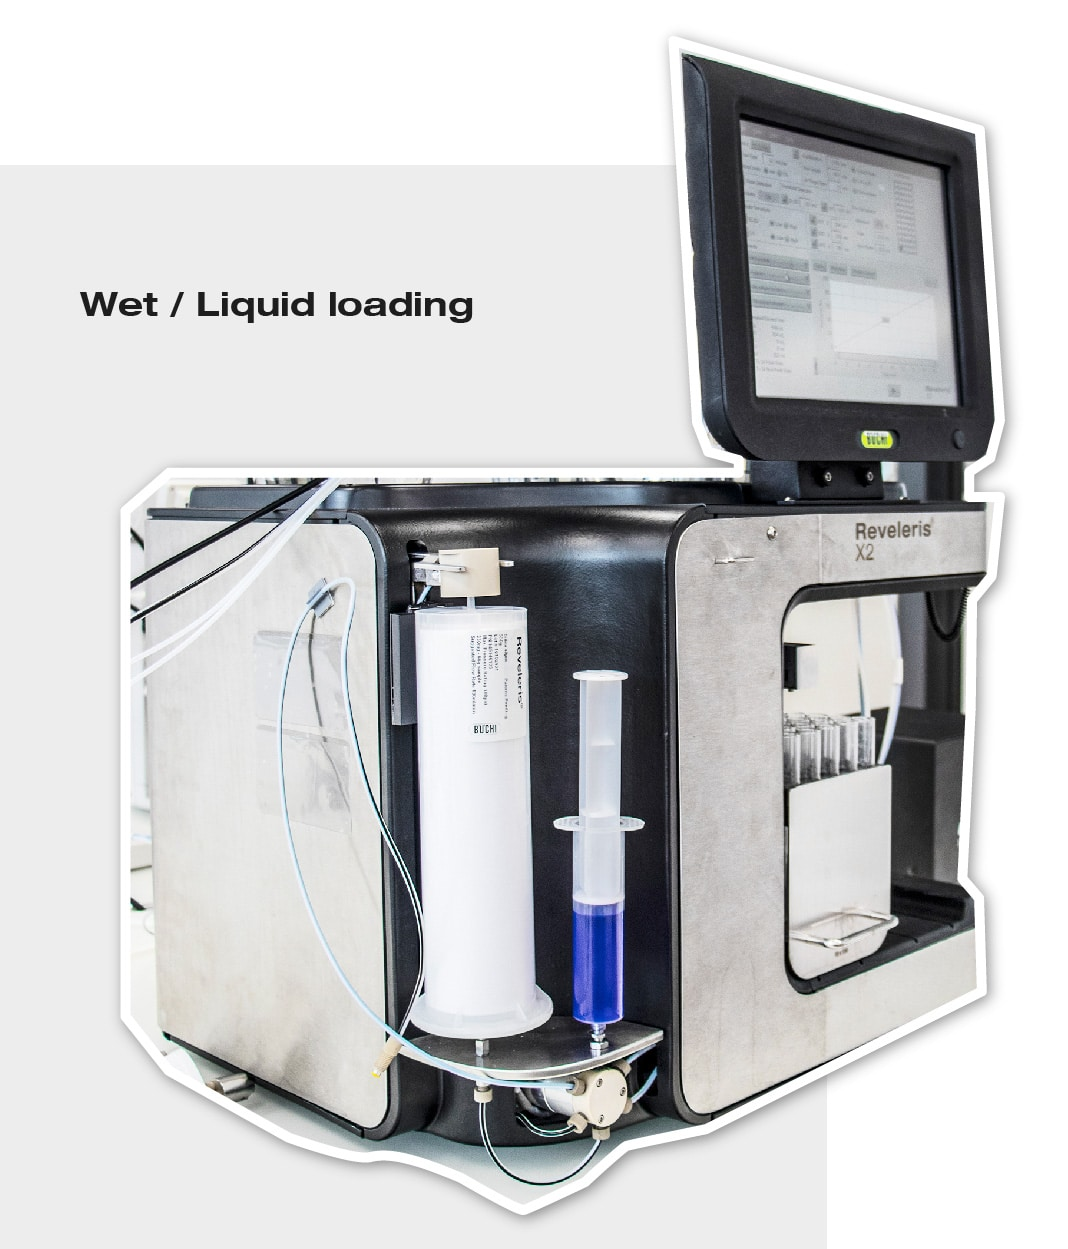 Image of how liquid loading of a sample looks like in a Reveleris flash chromatography system